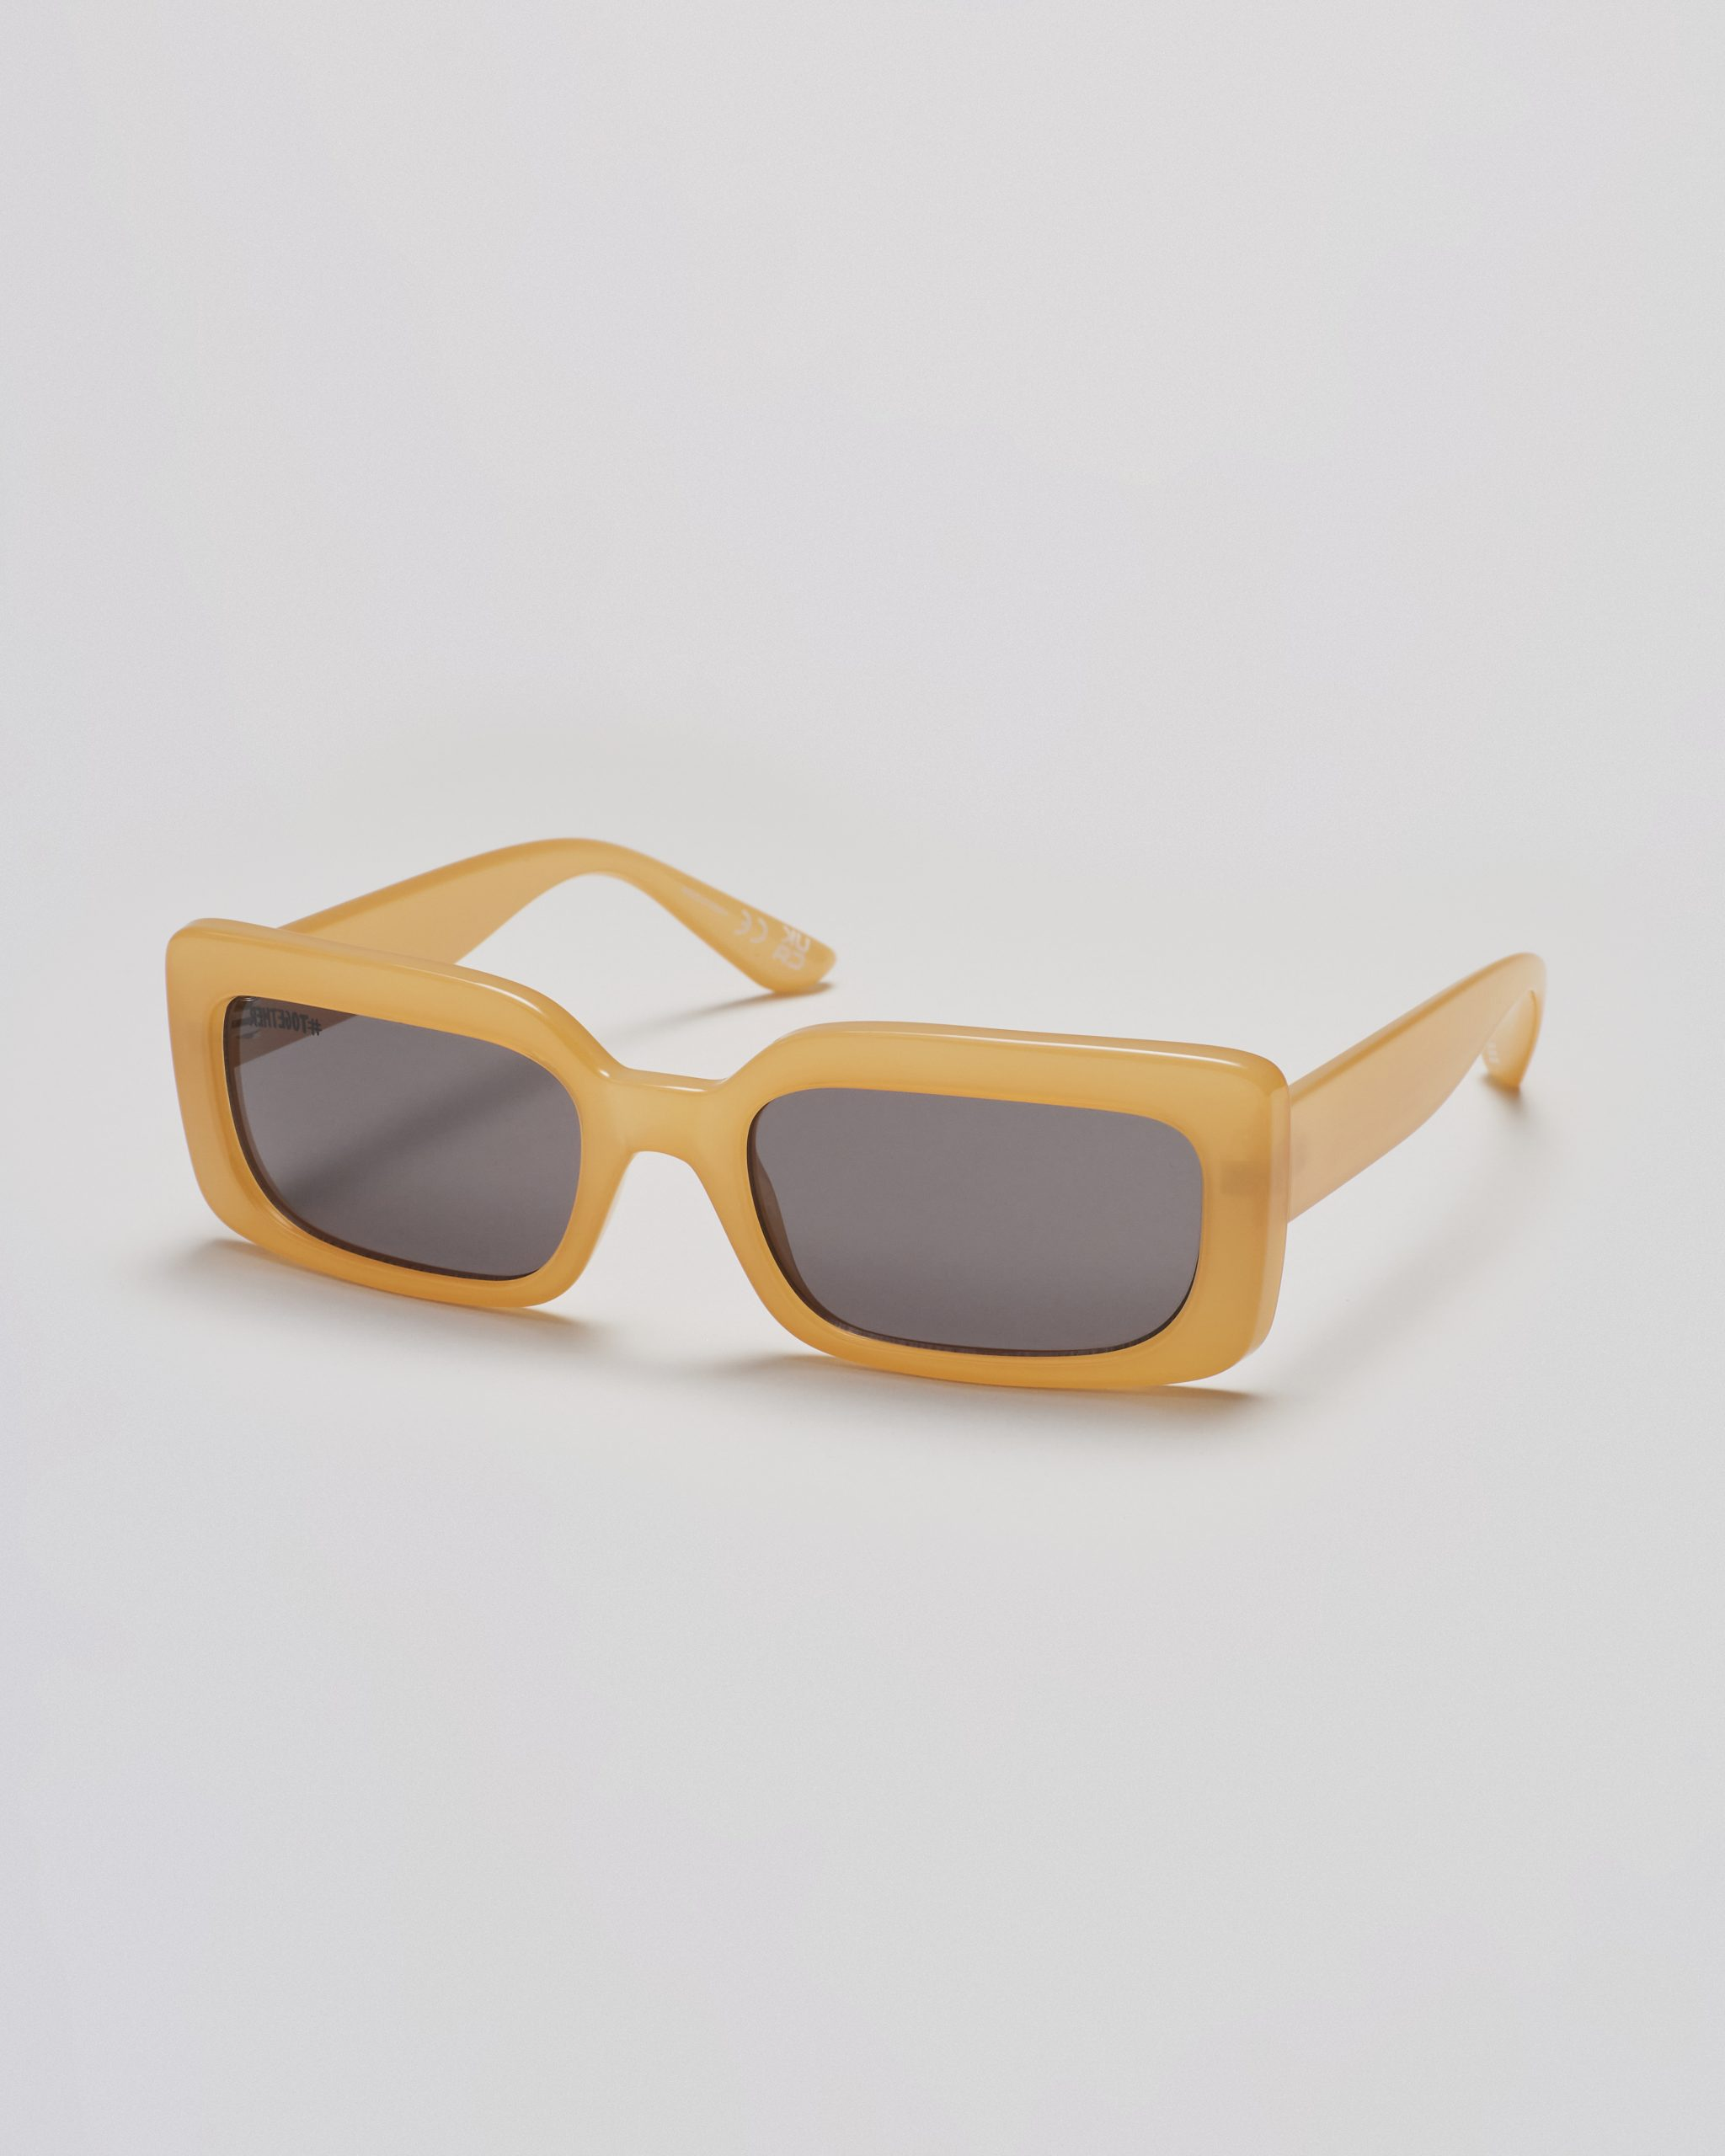 #TOGETHERBAND and Little Sun sunglasses